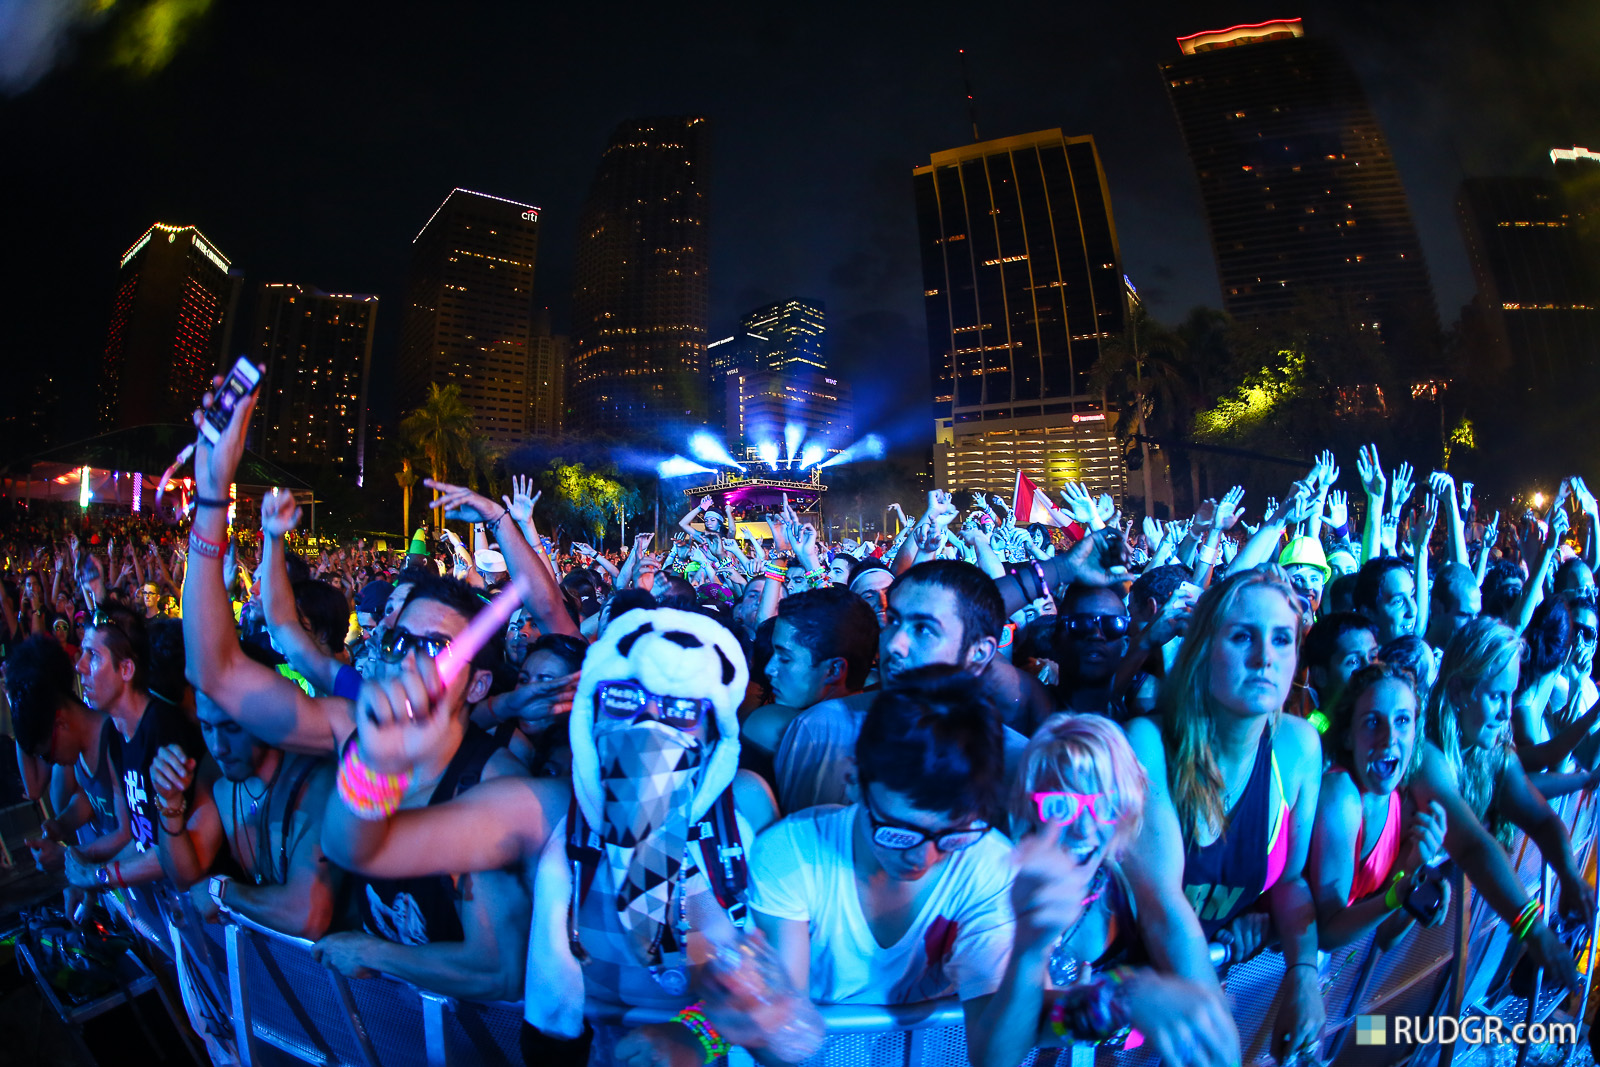 Download Ultra Music Festival Wallpaper Hd Gallery: Firechat Is The Future Of Festival Texting